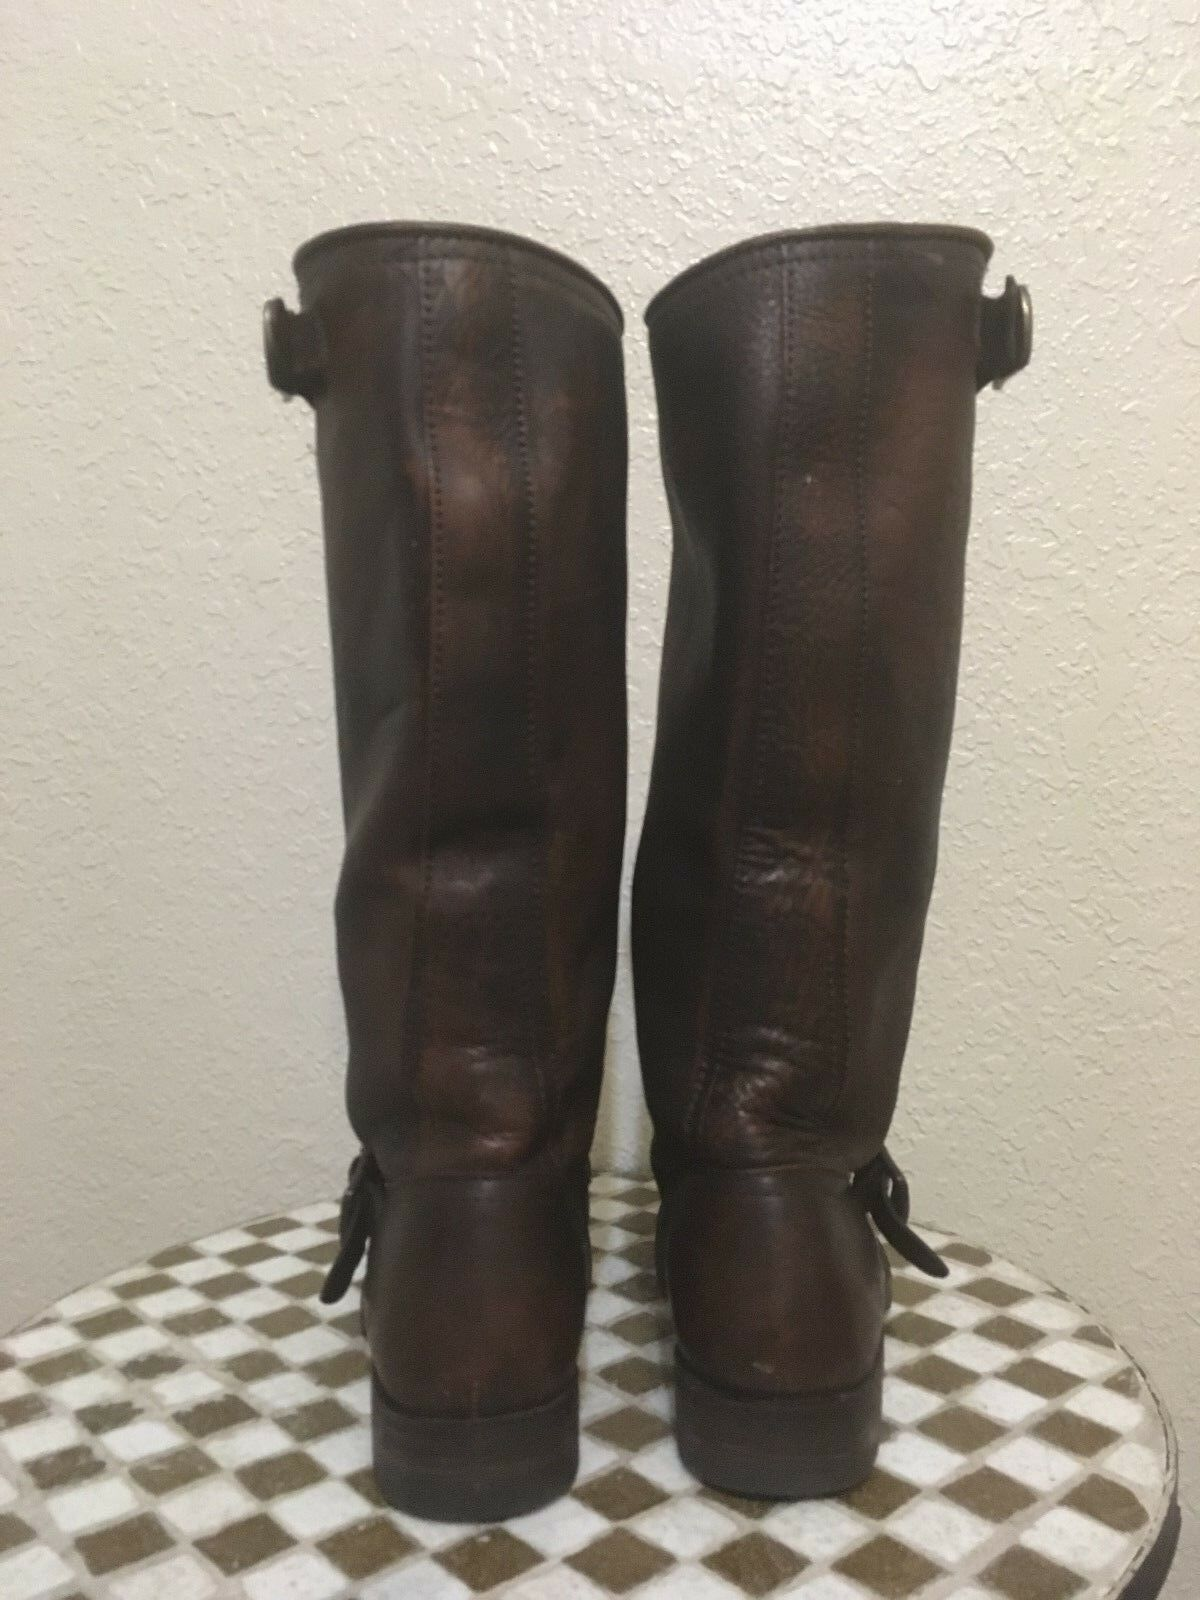 BROWN BROWN BROWN FRYE LEATHER WORK CHORE RIDING BOOTS 7 M 0c78ba